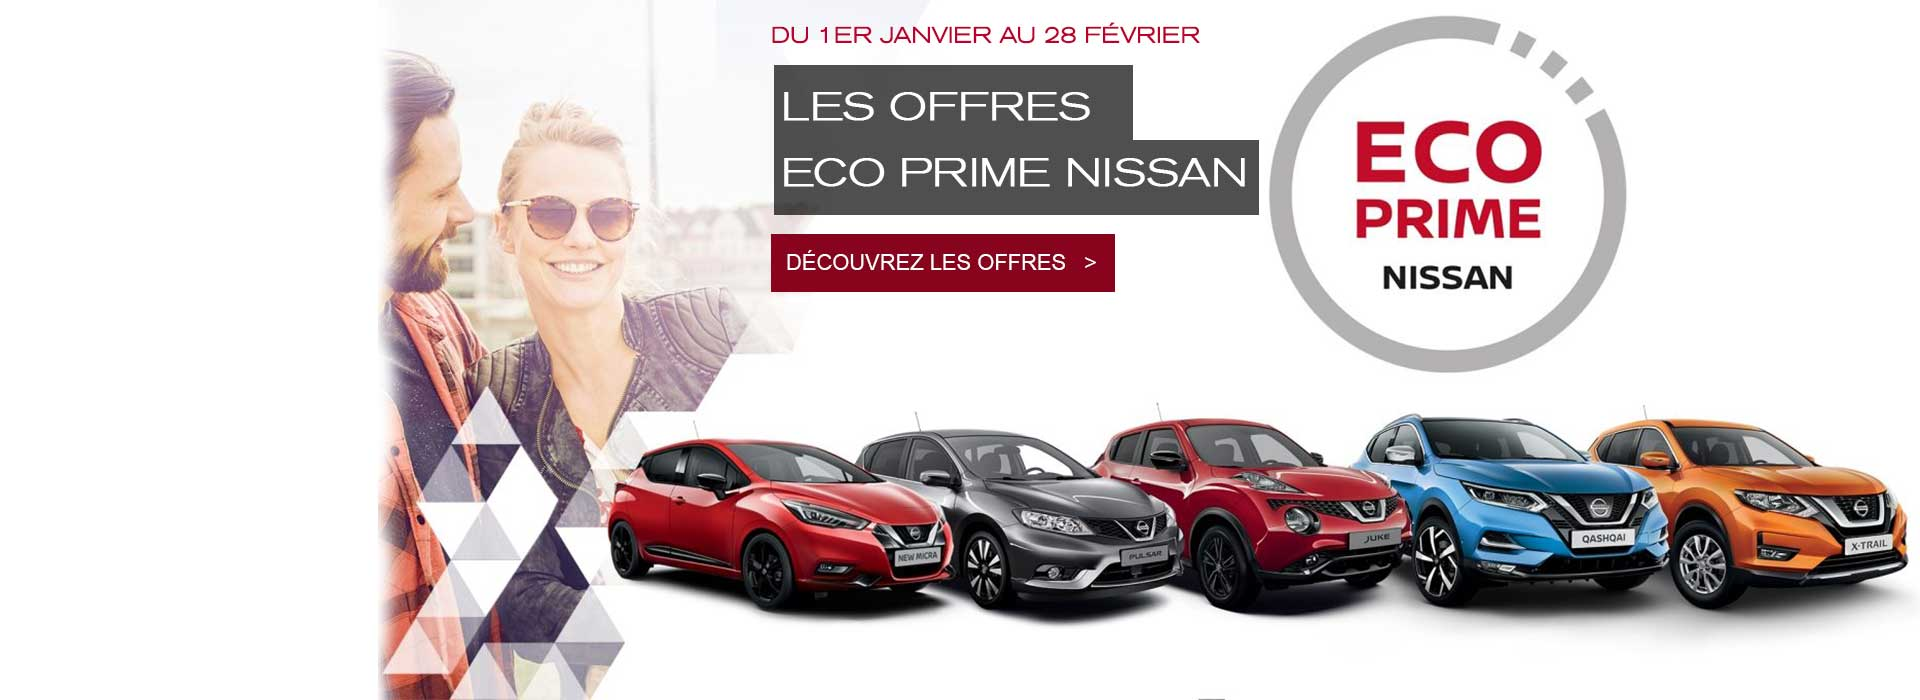 nissan dijon vente voiture neuve vehicule occasion. Black Bedroom Furniture Sets. Home Design Ideas